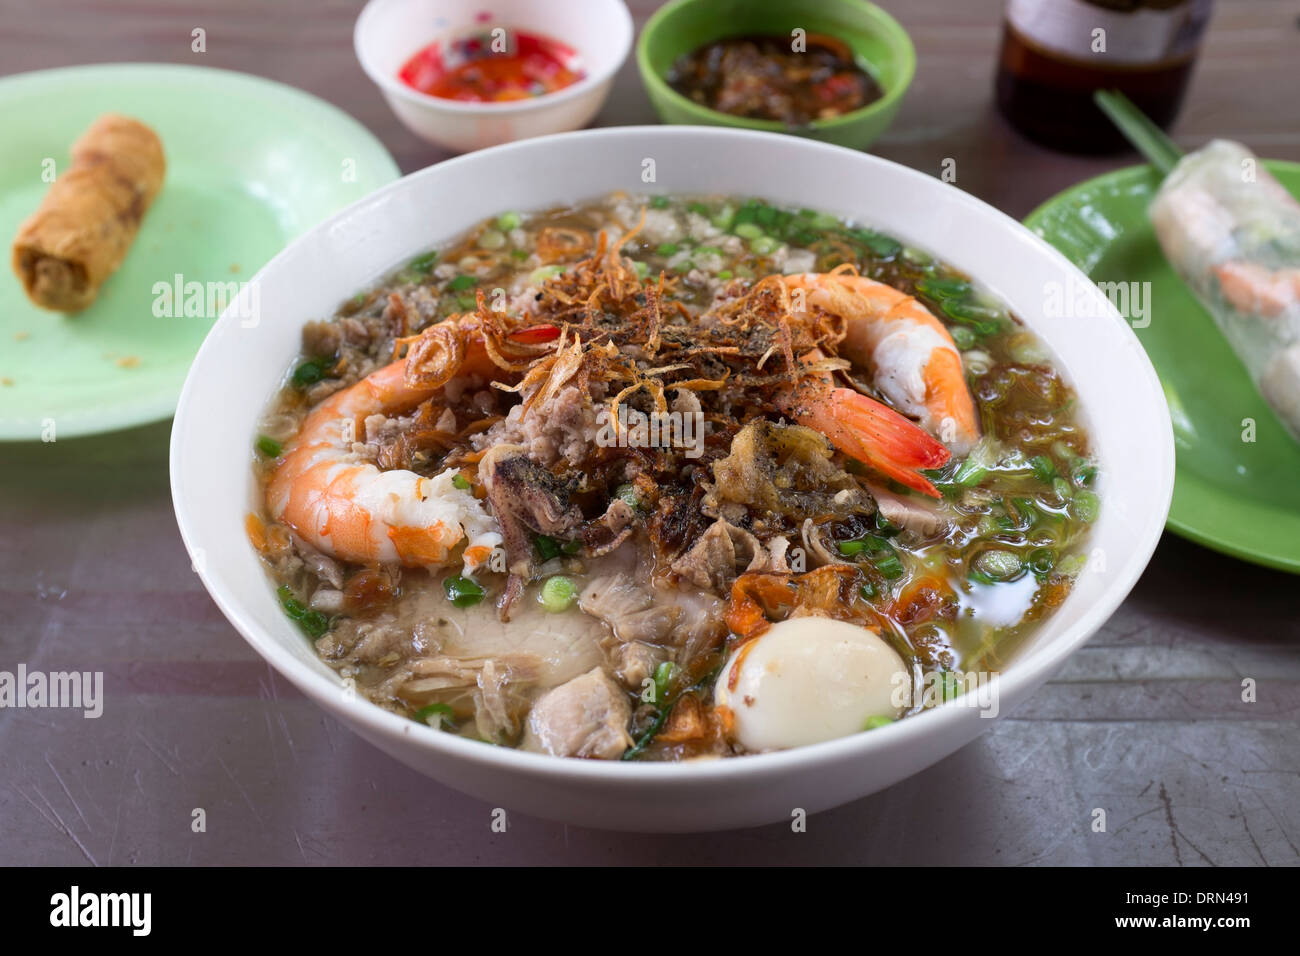 Stock Photo - Seafood Pho at the Lunch Lady Restaurant (Nguyen Thi Thanh) Ho Chi Minh City (Saigon